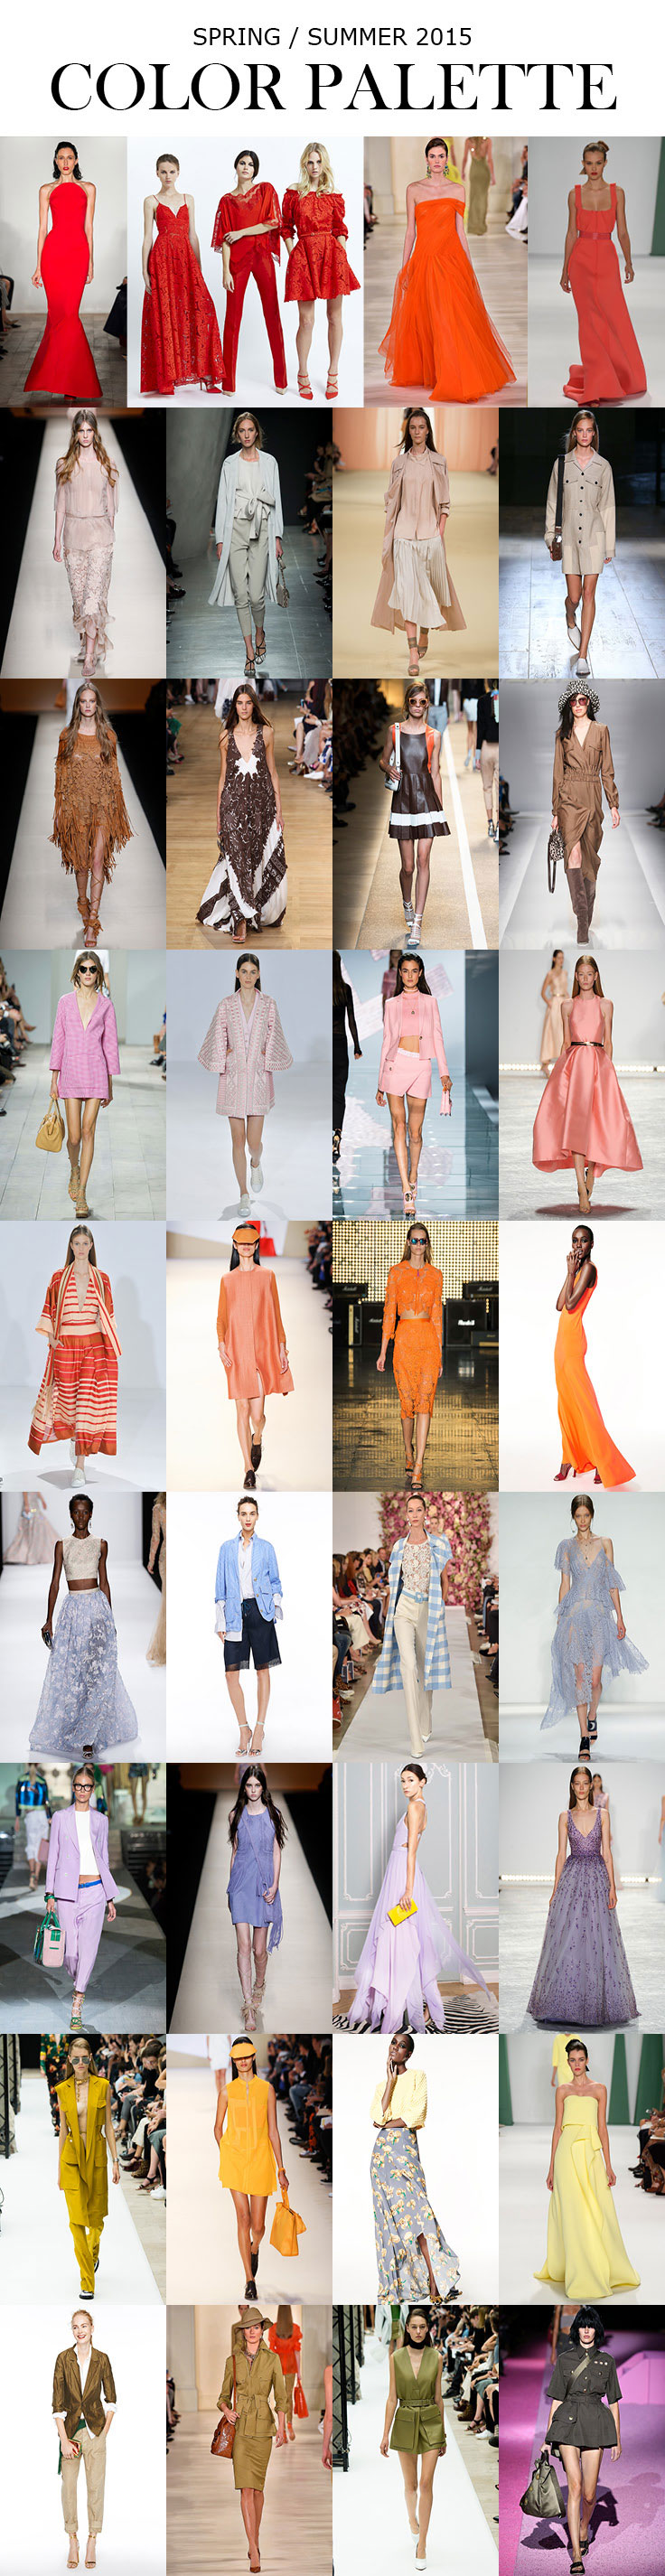 Spring / Summer 2015 Trends_Color Palette